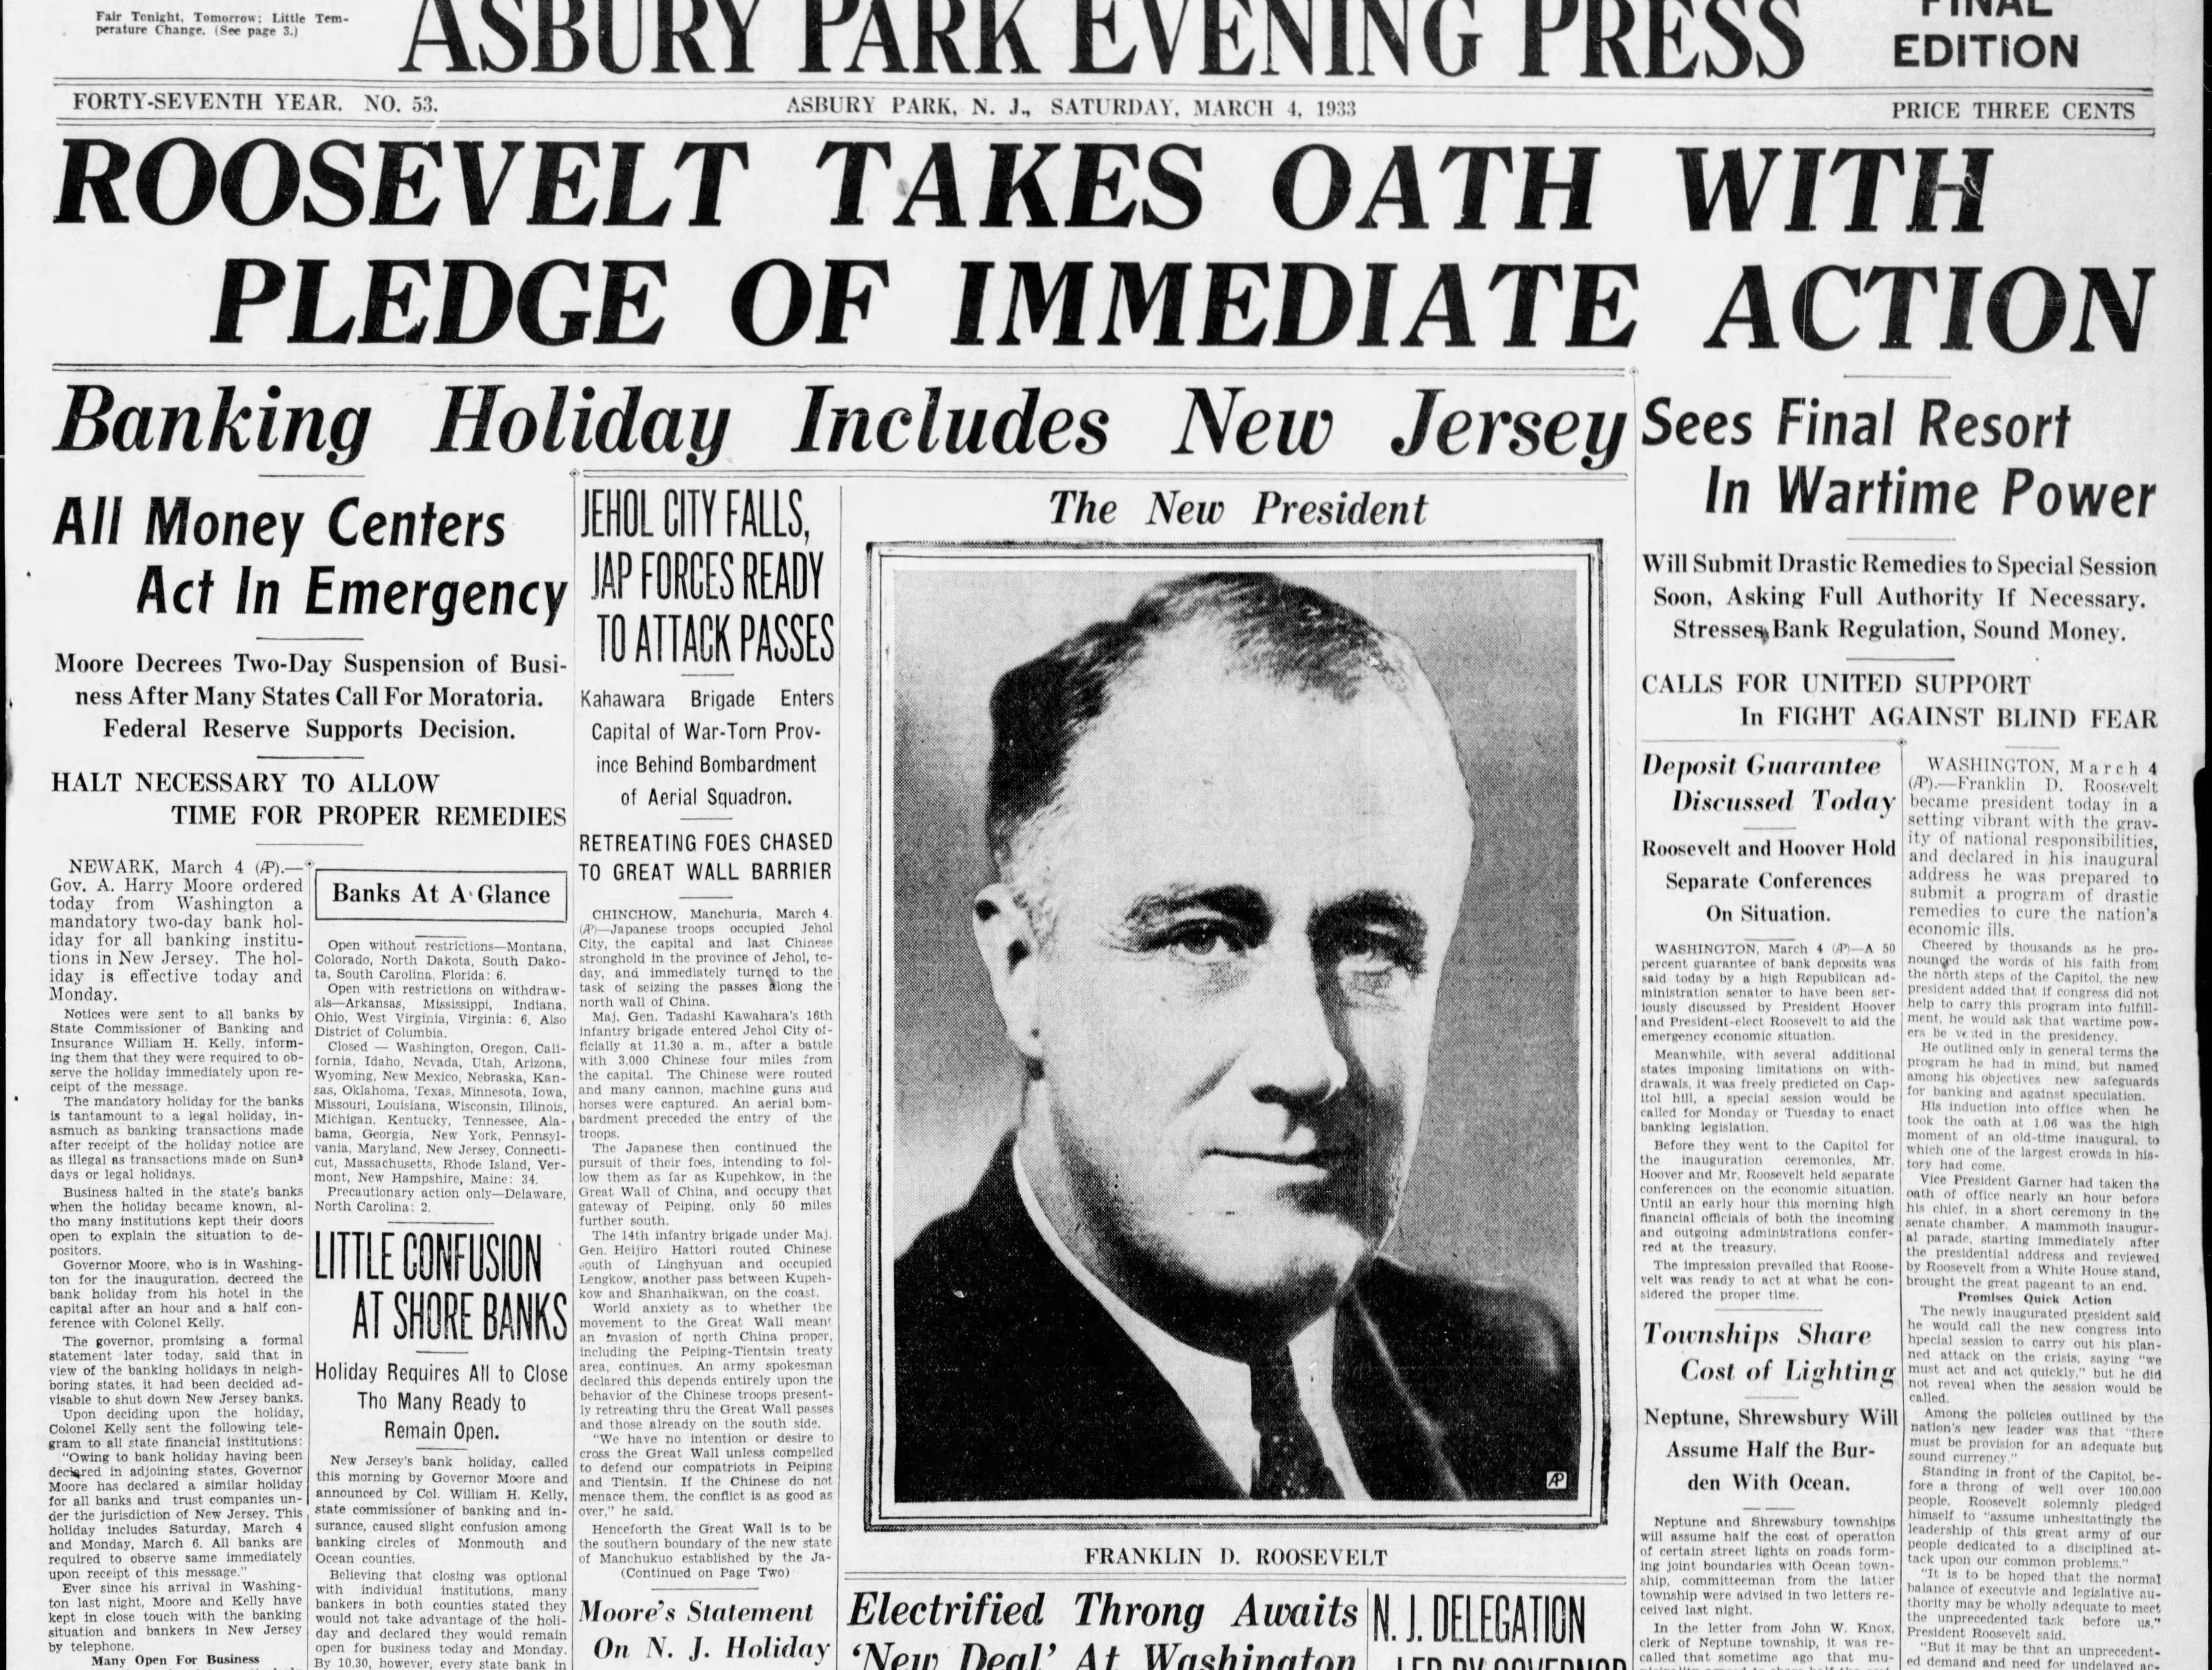 As the Great Depression threatens to tear the country apart, Franklin D. Roosevelt becomes the 32nd president of the United States on Saturday, March 4, 1933 and promises swift government action and regulation to remedy the nearly four-year-old crisis.